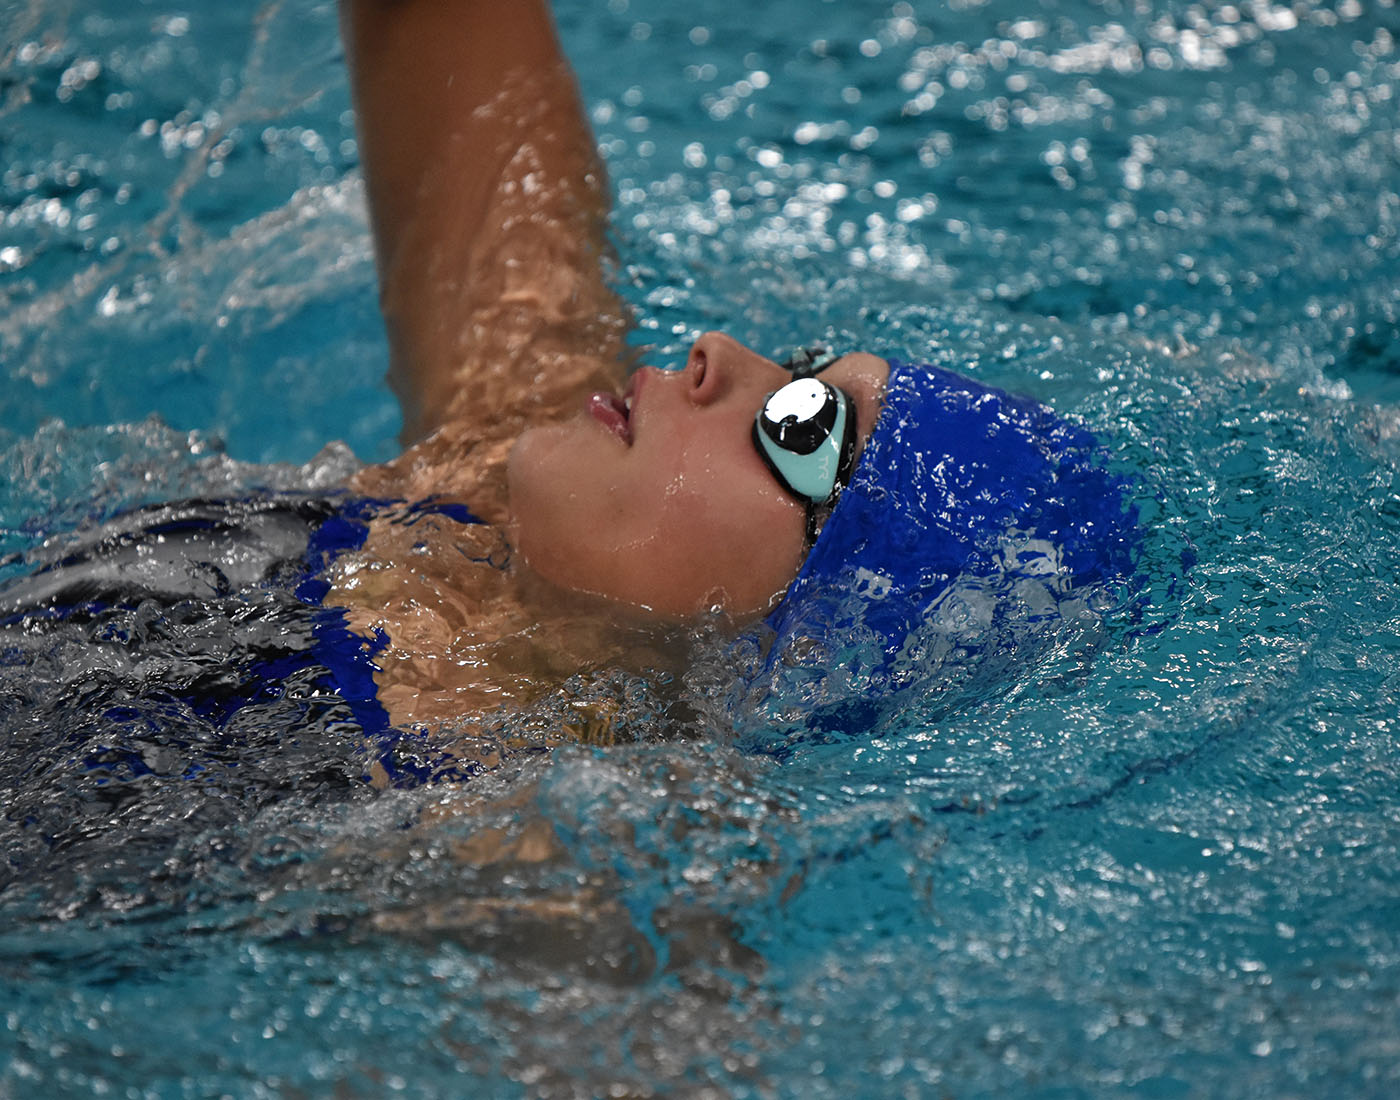 The Owatonna swimmer strokes her way to the finish